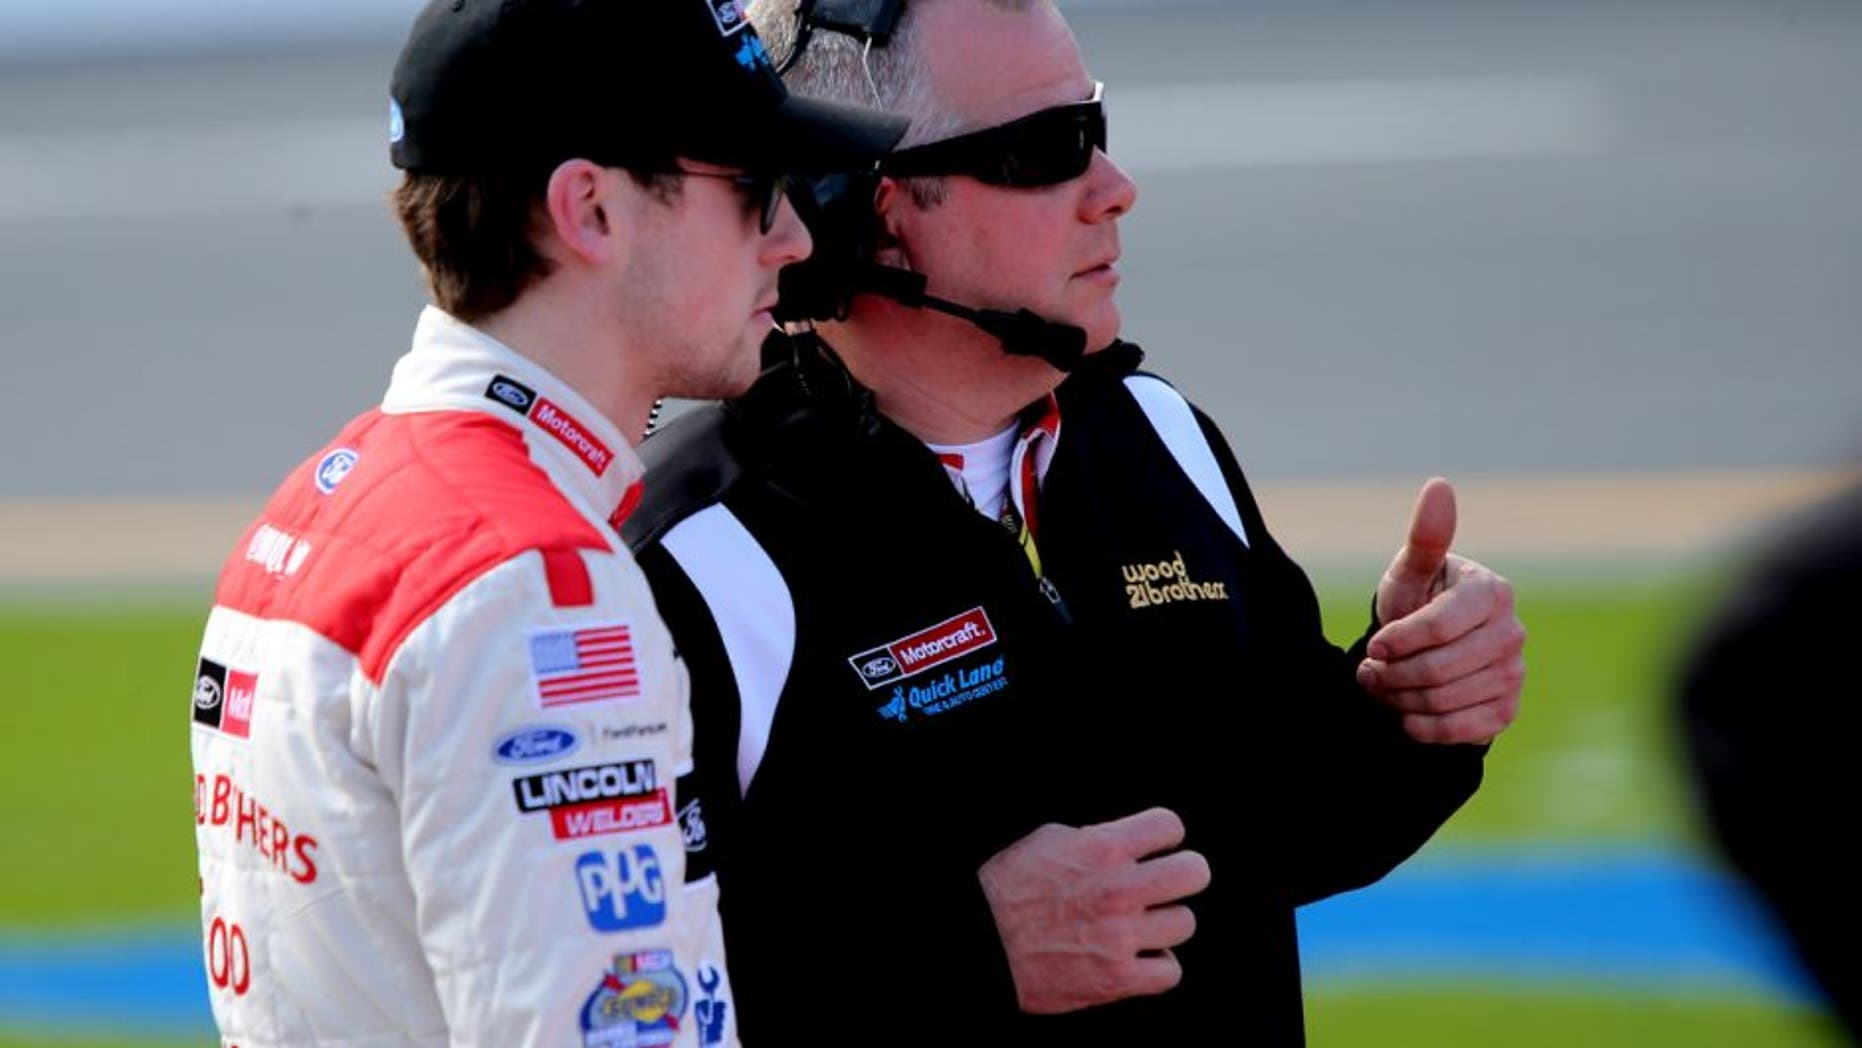 DAYTONA BEACH, FL - FEBRUARY 14: Ryan Blaney, driver of the #21 Motorcraft/Quick Lane Tire & Auto Center Ford, talks with crew chief Jeremy Bullins on the grid during qualifying for the NASCAR Sprint Cup Series Daytona 500 at Daytona International Speedway on February 14, 2016 in Daytona Beach, Florida. (Photo by Jerry Markland/Getty Images)